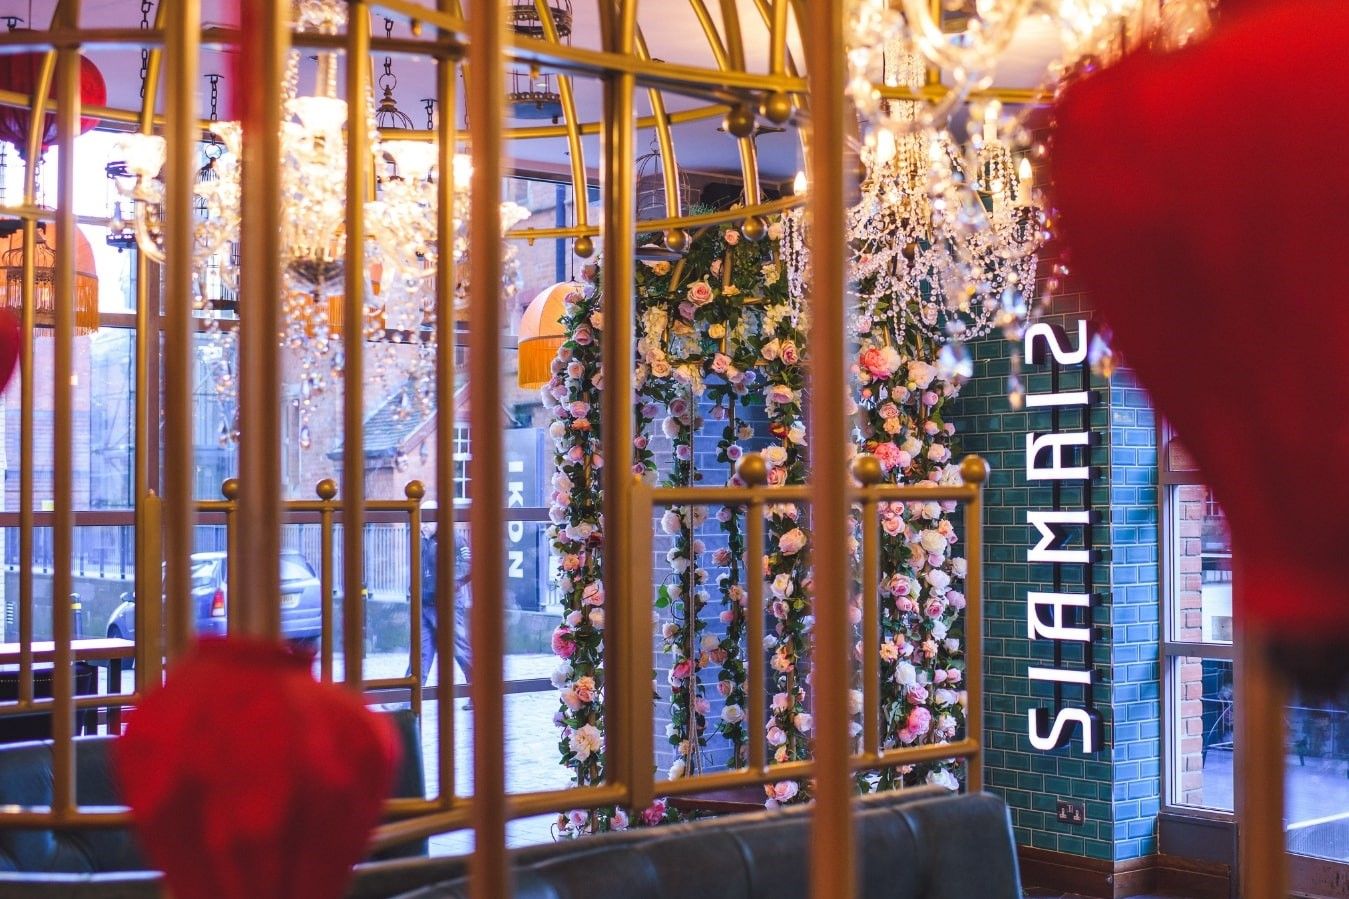 entrance-to-siamais-restaurant-with-flowers-and-chandeliers